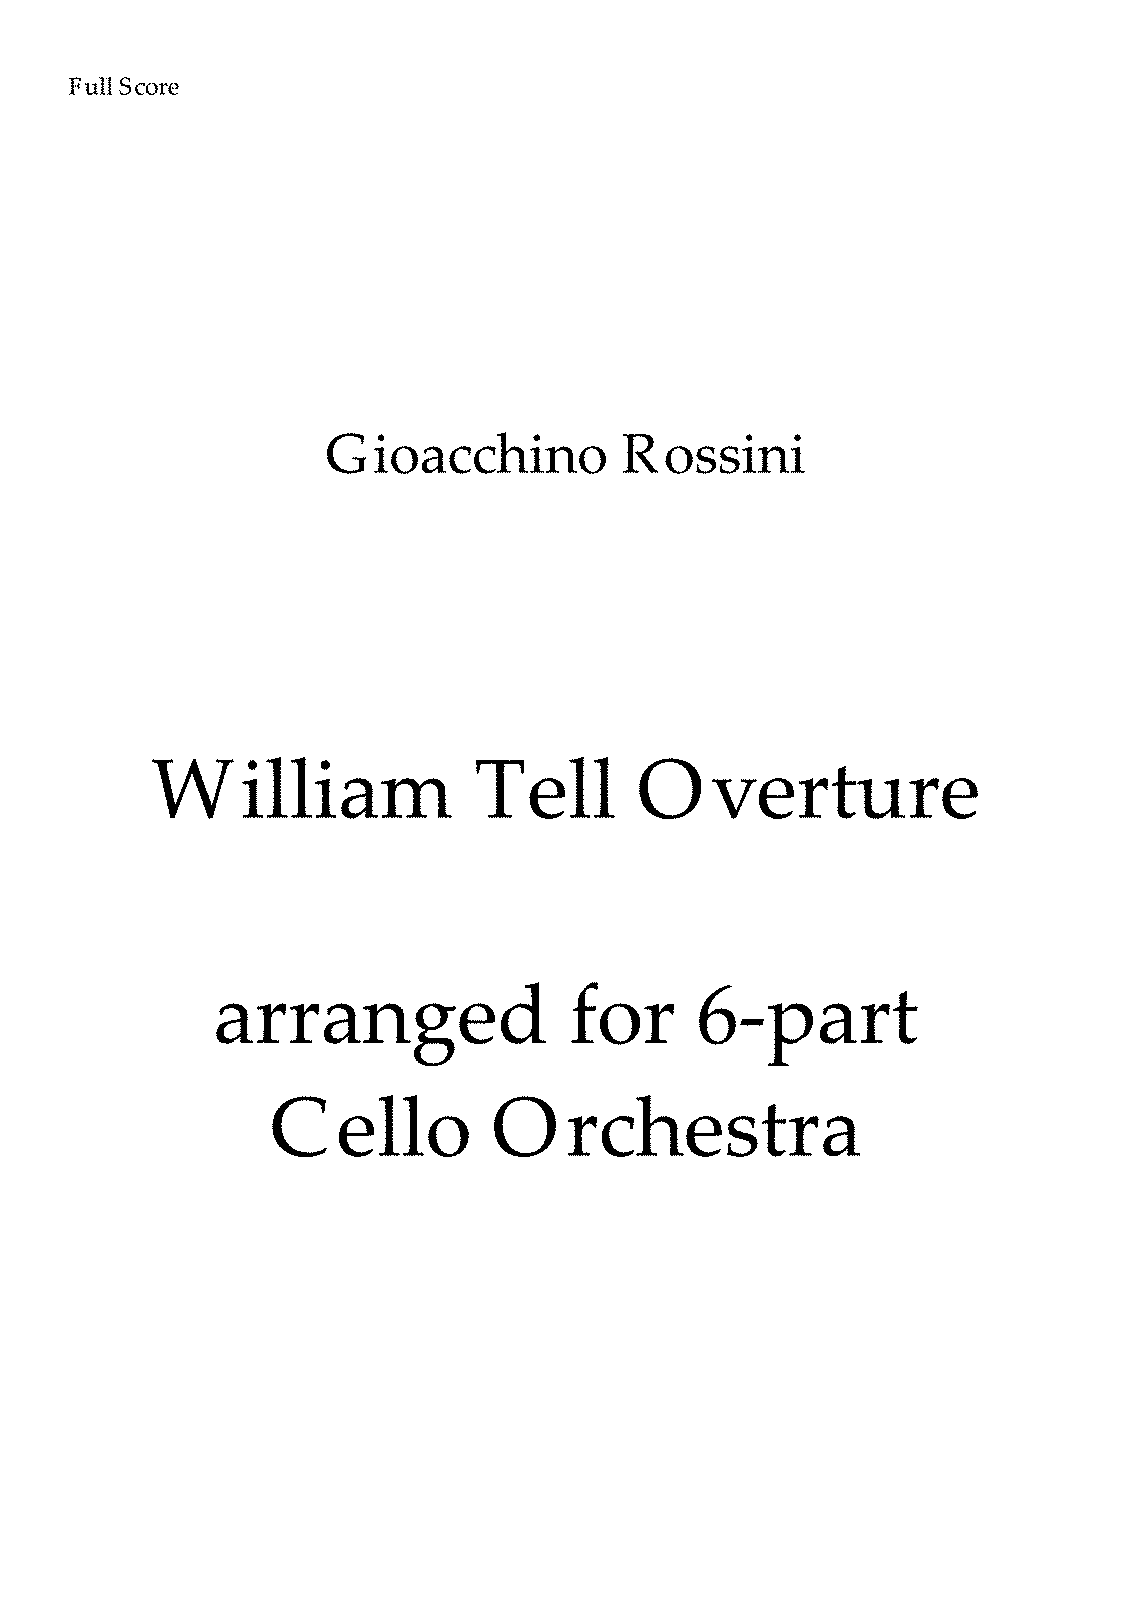 PMLP07234-Rossini William Tell Overture CelloOrchestraArrangement Seymour ForIMSLP - Full Score.pdf